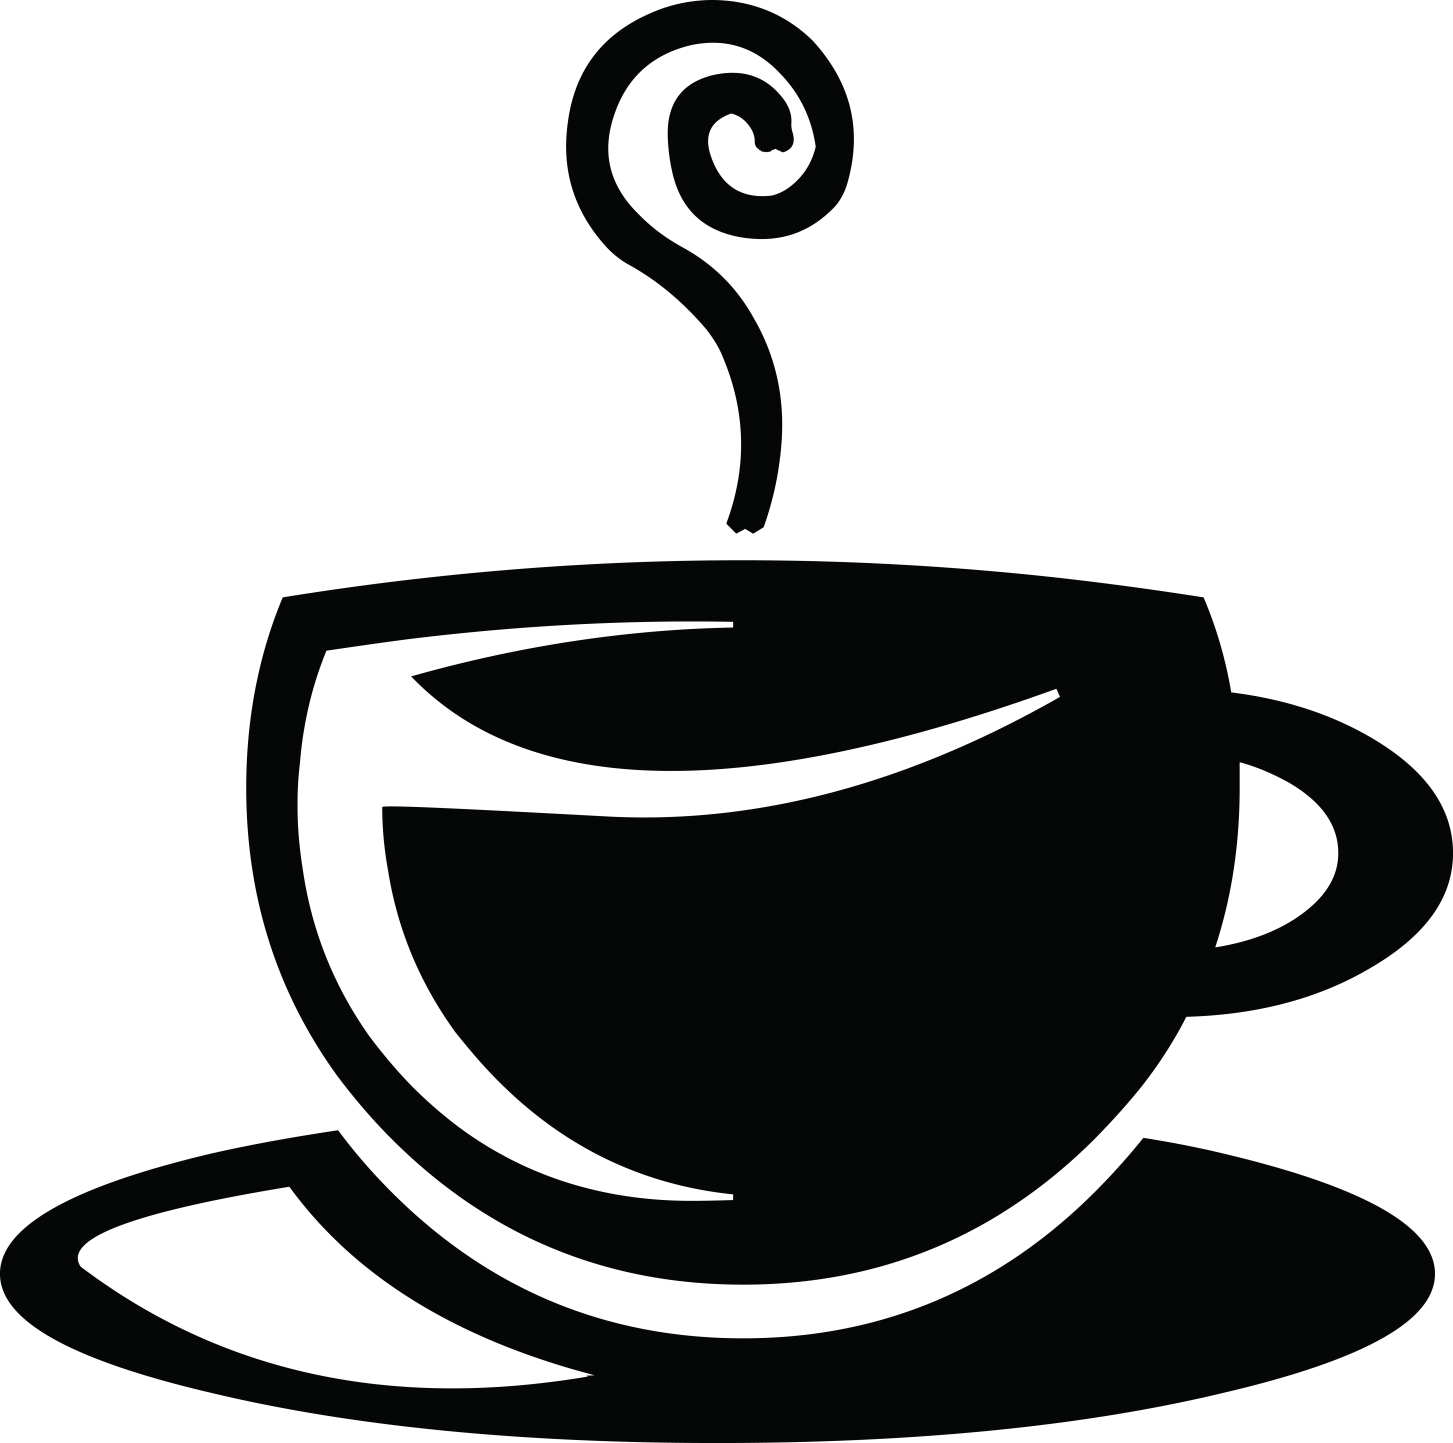 Coffee cup vector free - Isolated Coffee Cup Vector